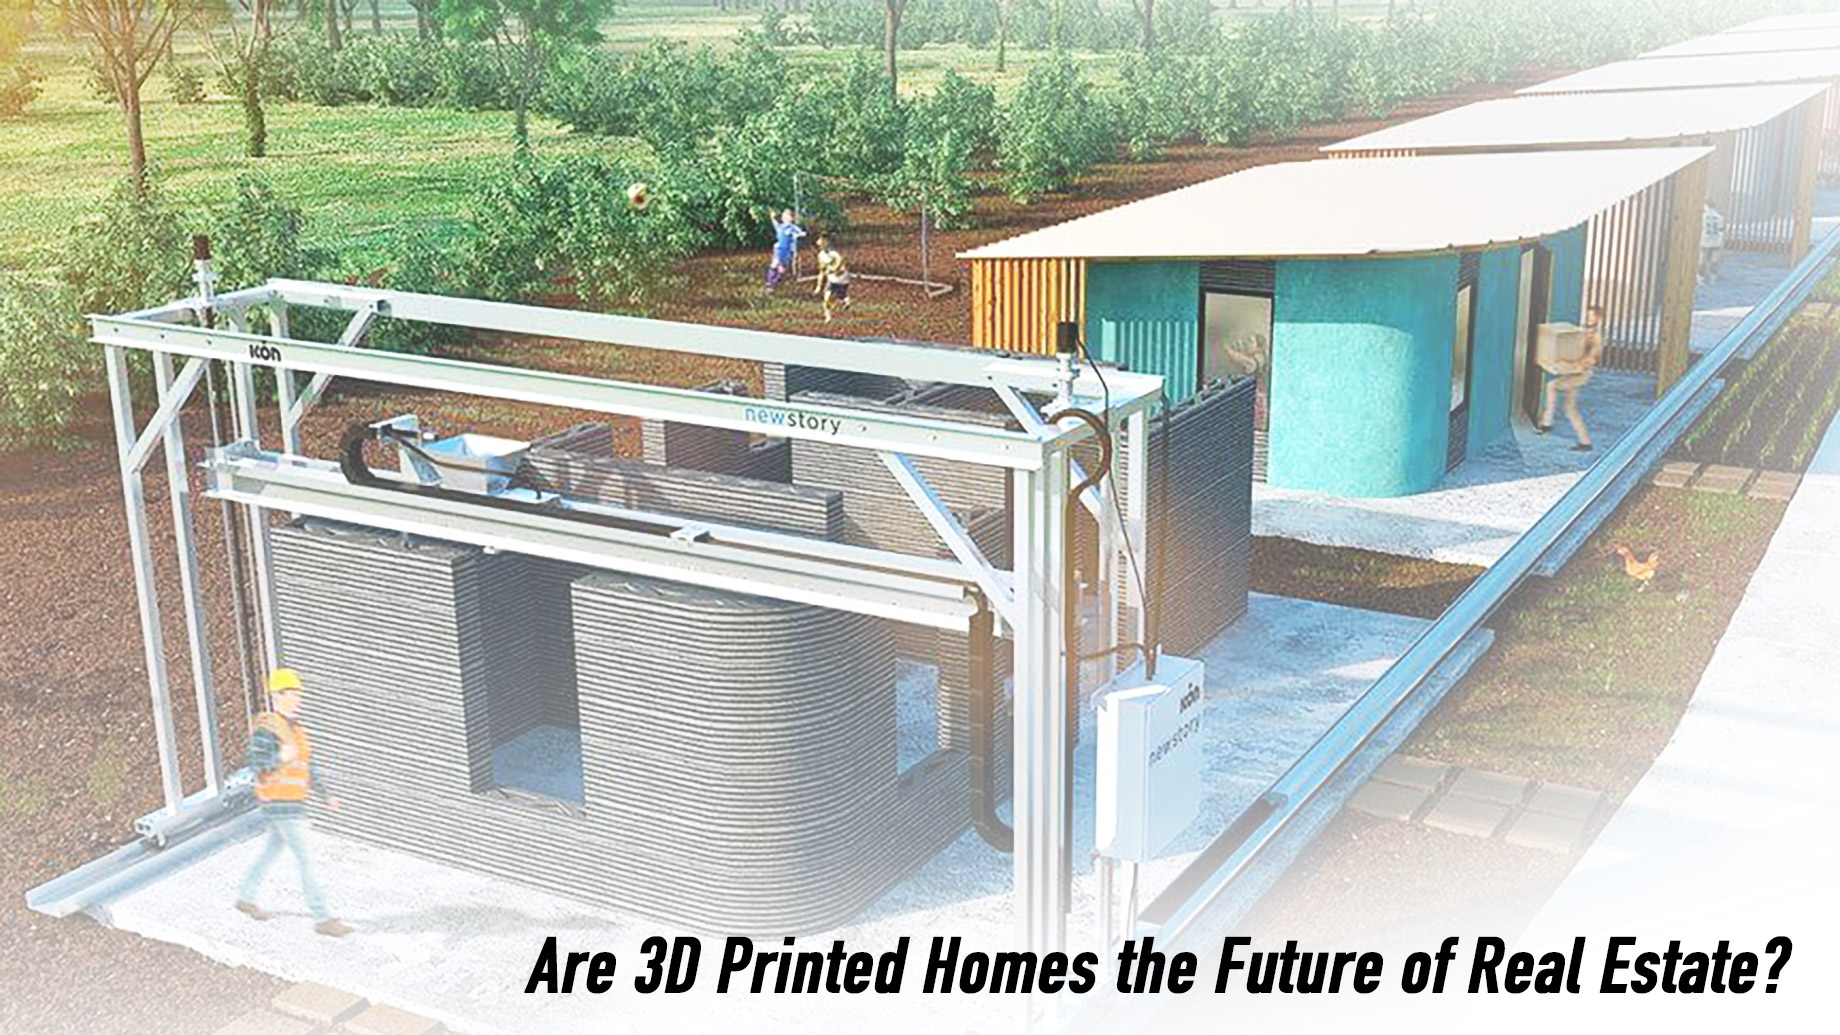 Are 3D Printed Homes the Future of Real Estate?